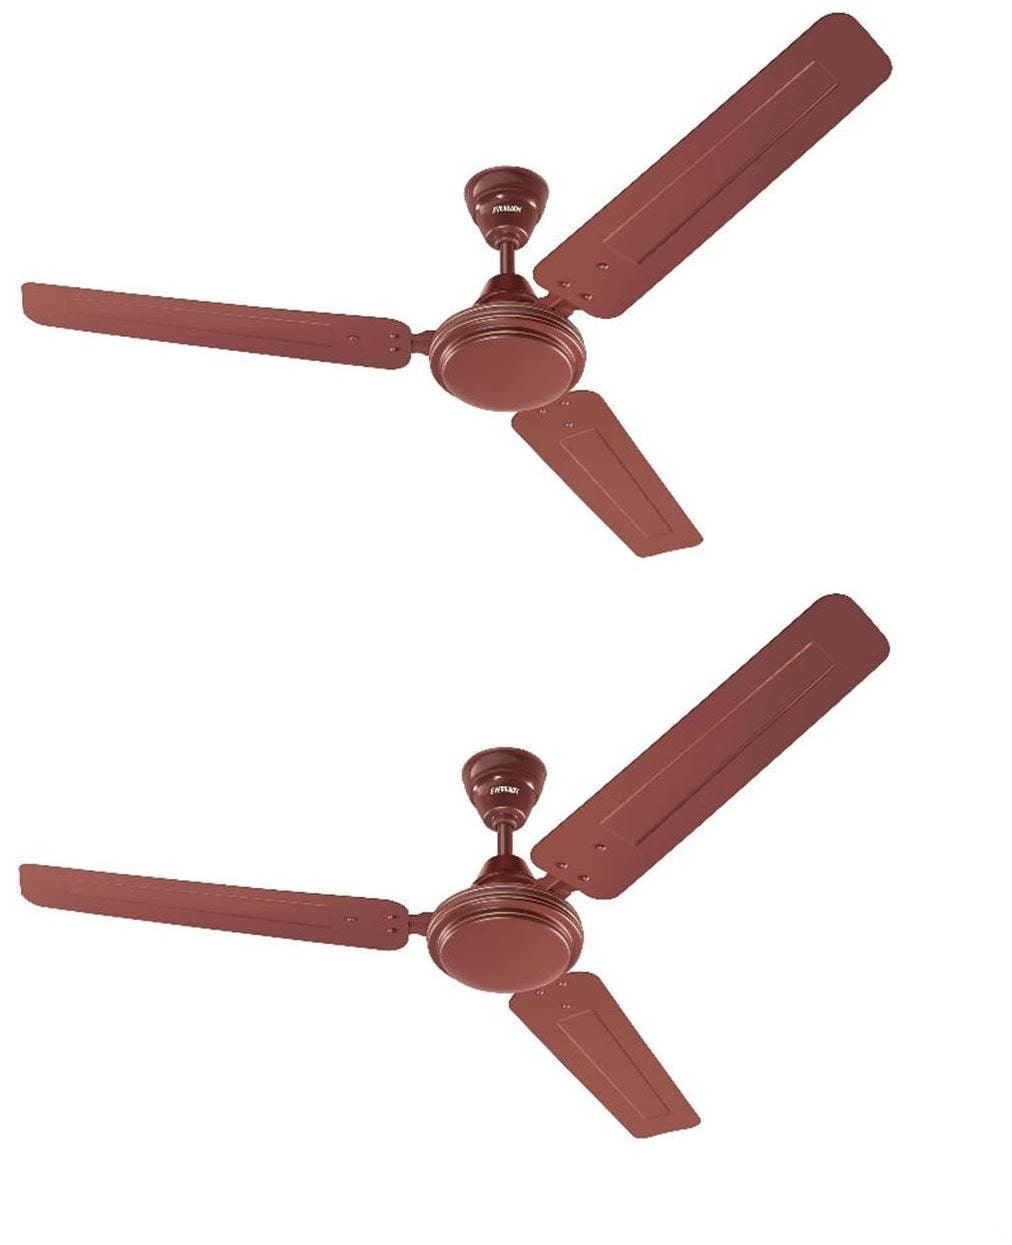 Eveready FAB-M 1200MM Ceiling Fan (Brown) Pack of 2